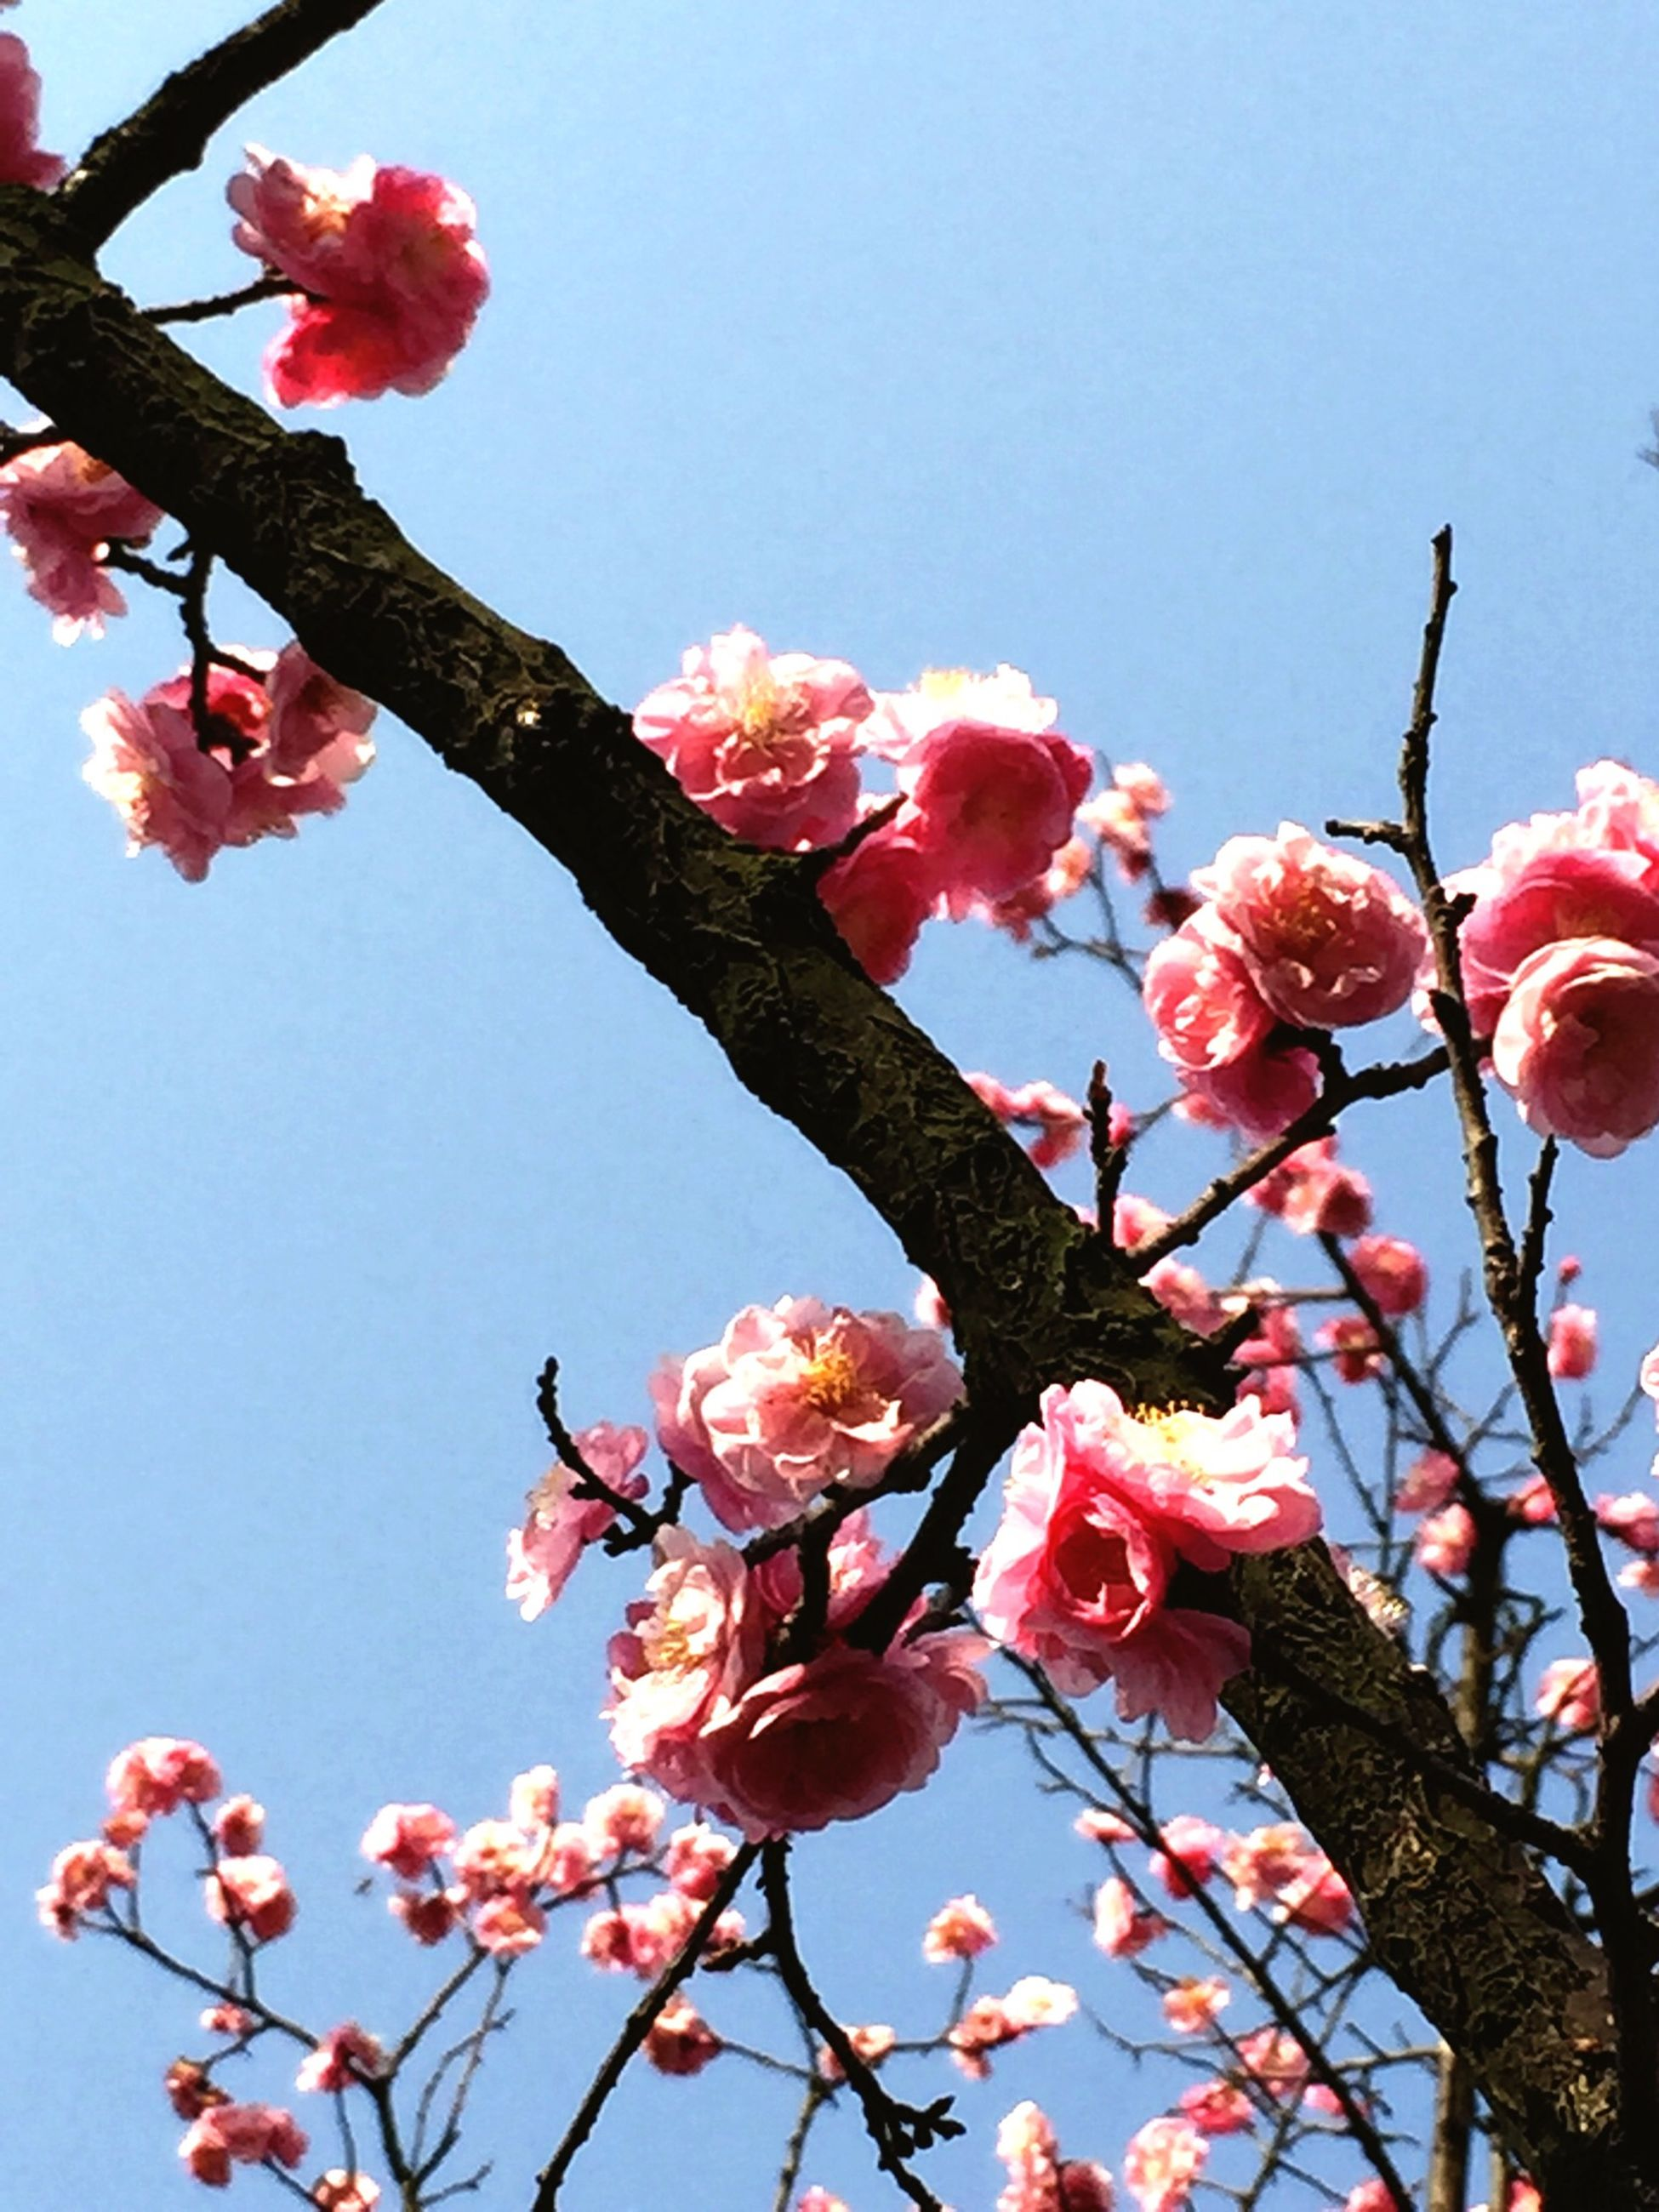 flower, freshness, low angle view, branch, clear sky, growth, fragility, tree, pink color, beauty in nature, blossom, nature, petal, cherry tree, blooming, fruit tree, in bloom, springtime, red, sky